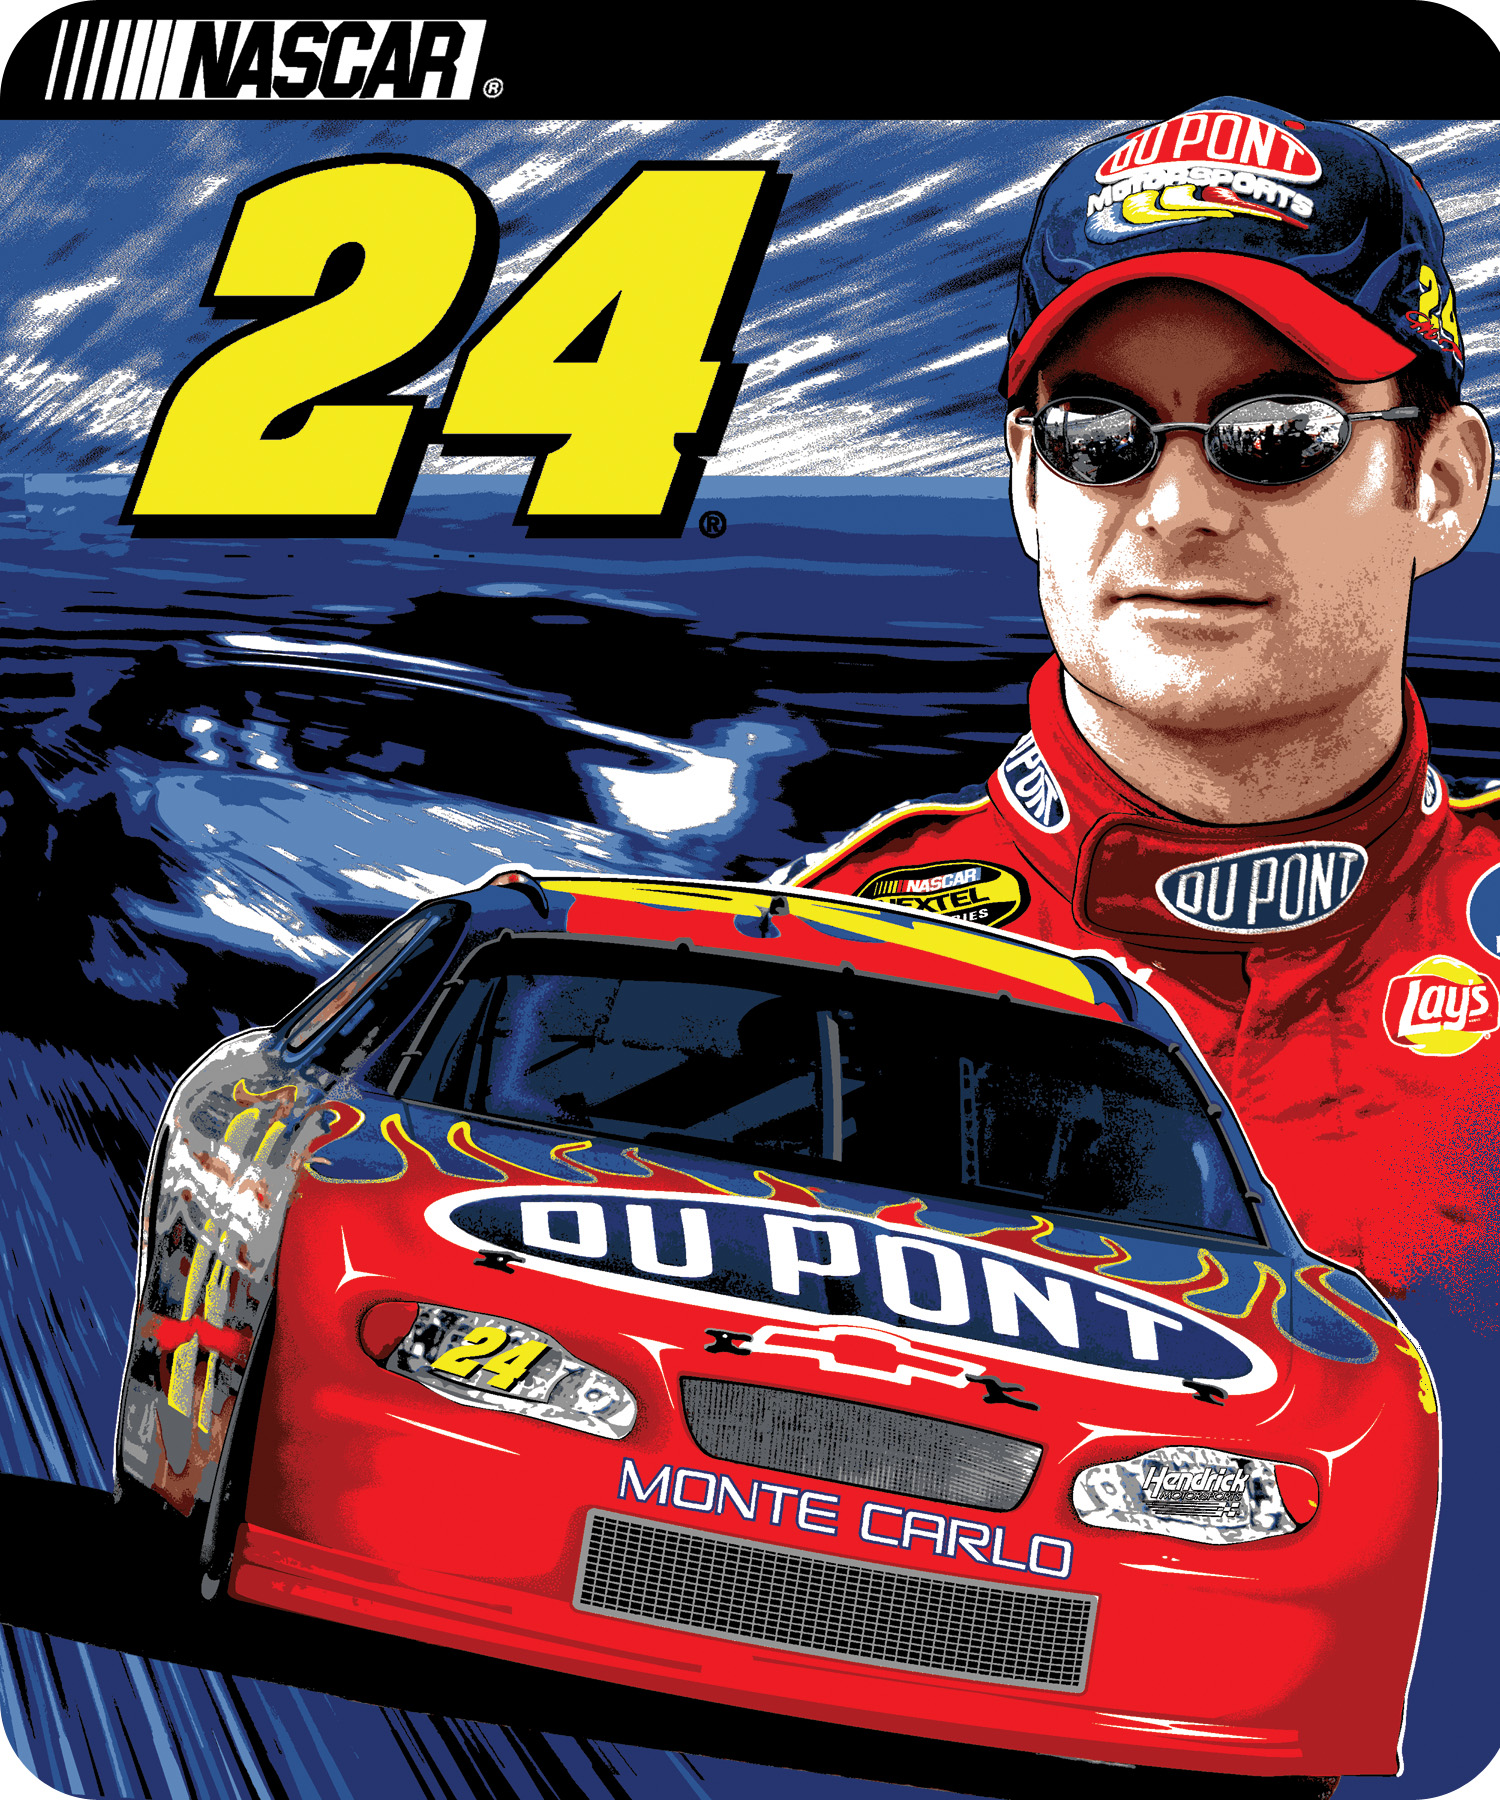 Google-Image-Result-for-http-www-hollywoodphotoshop-com-sports-Racing-Jeff-Gordon-Jeff-Gordon-wallpaper-wp3006220